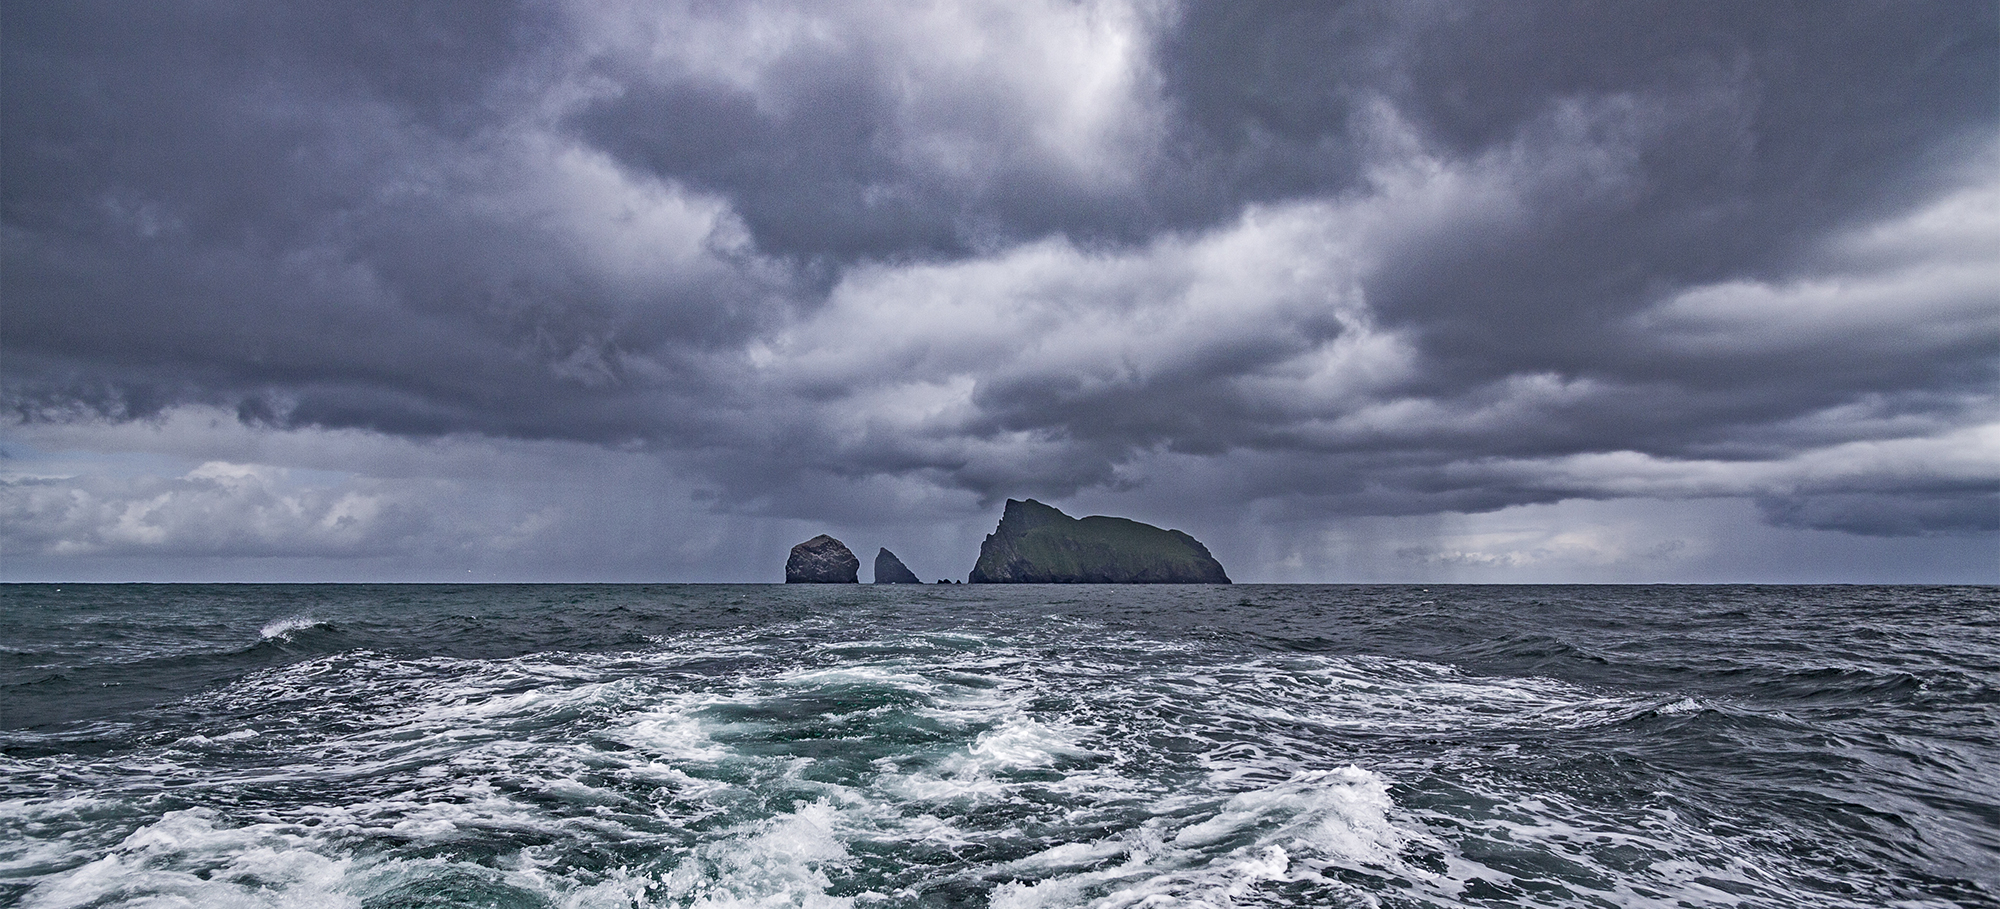 St Kilda - Boreray and the Sea Stacs